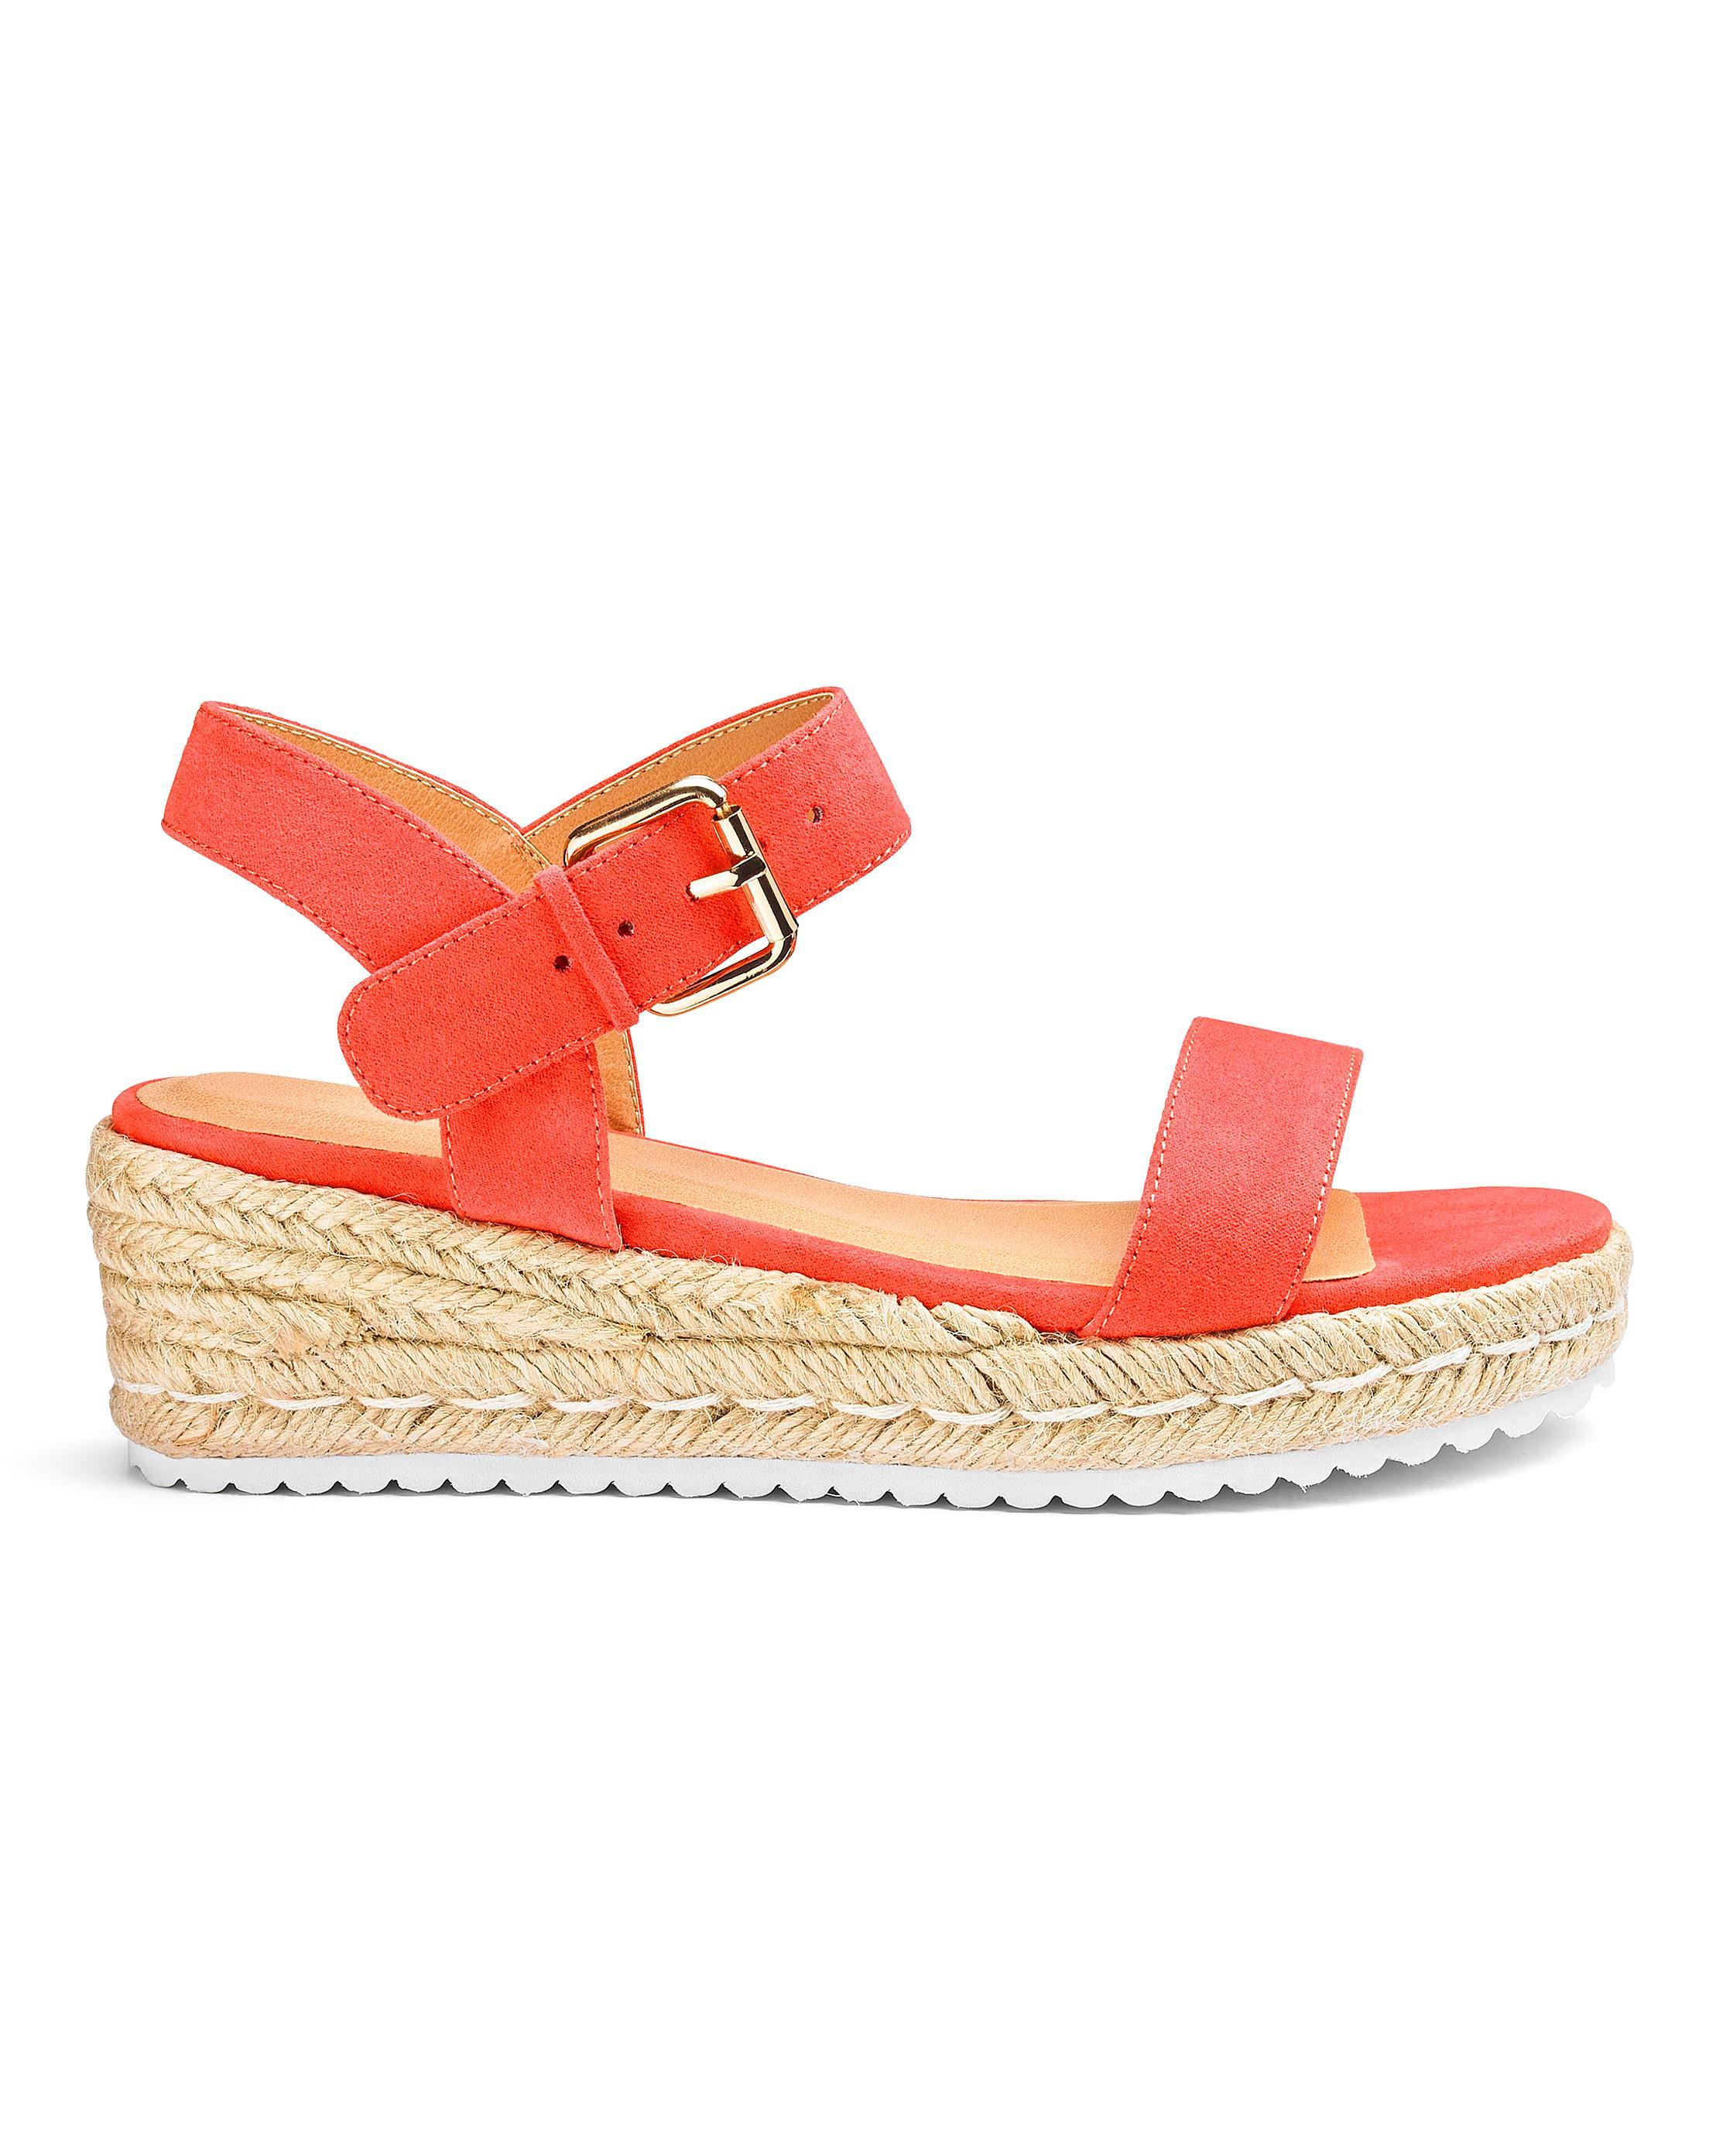 a6776e9a25a1 Simply Be. Women s Indra Espadrille Wedge